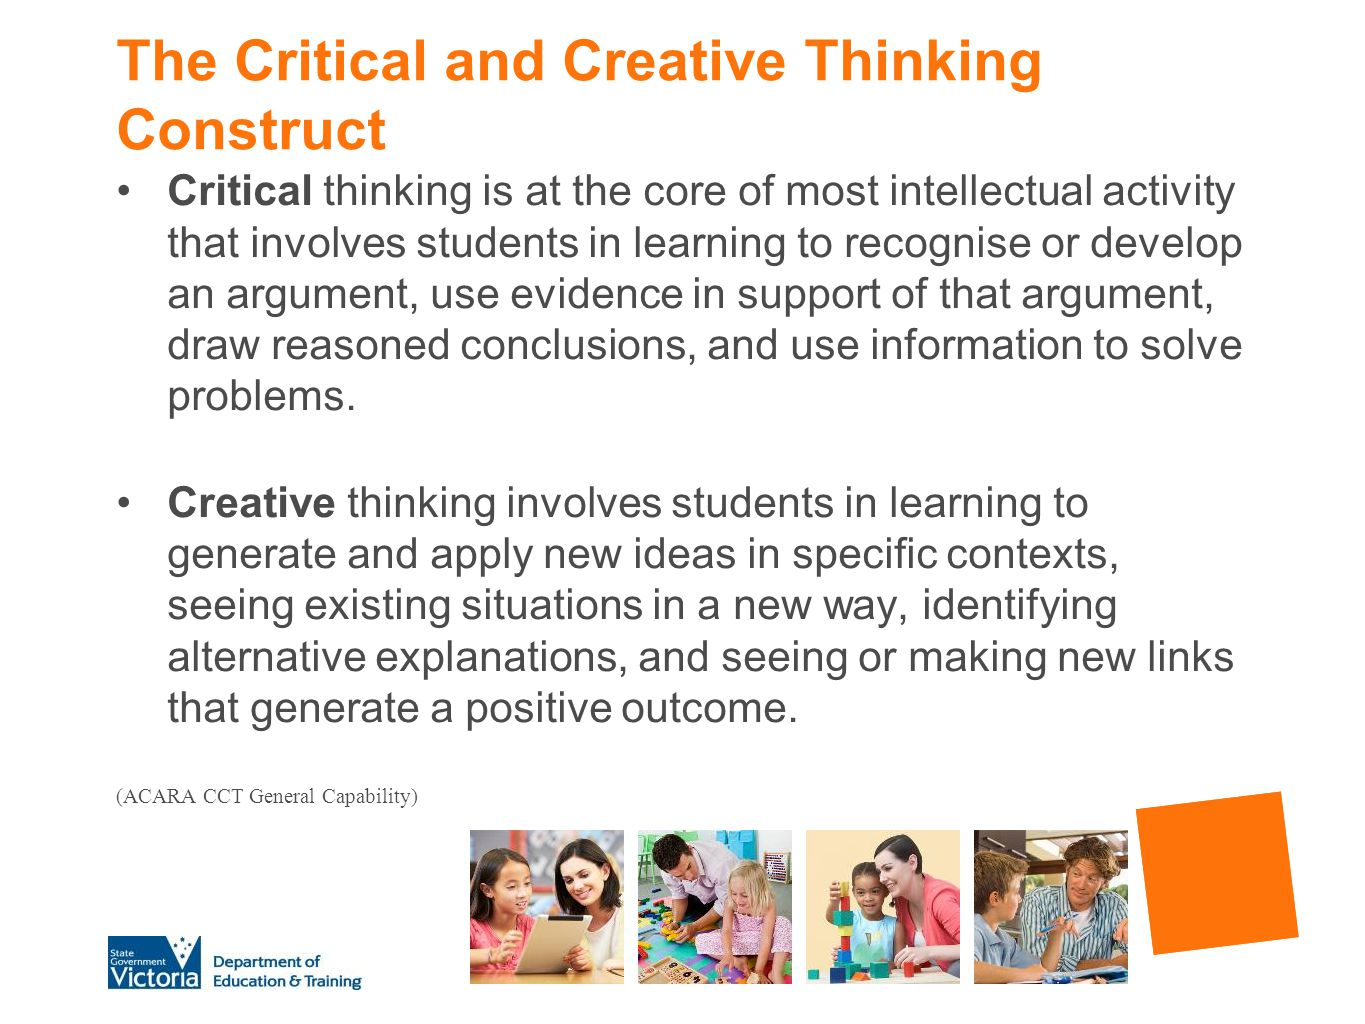 The Critical and Creative Thinking Construct